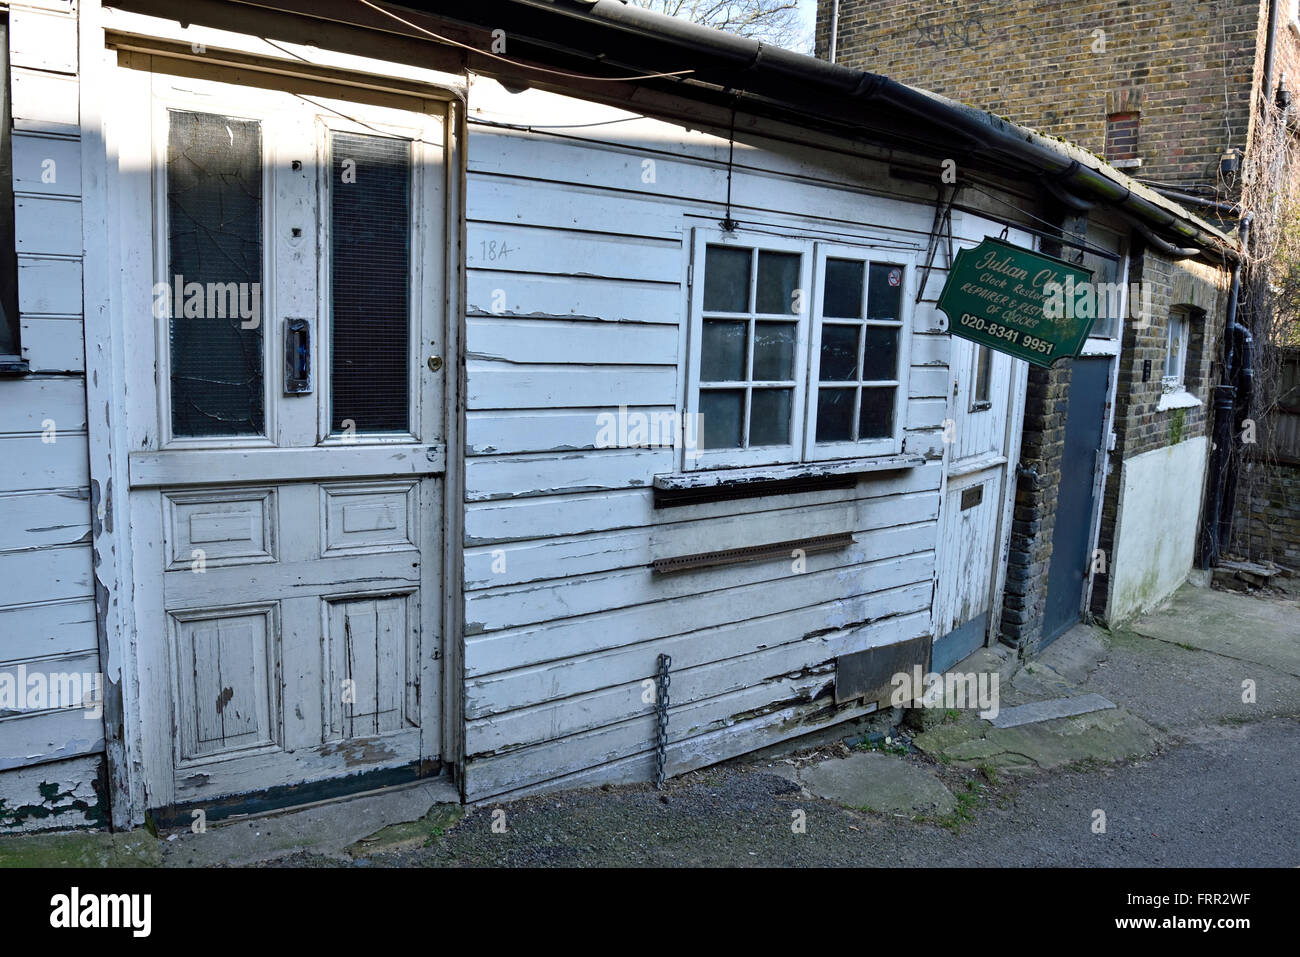 Derelict wooden single story white painted work building, Highgate Village London Engalnd Britain UK - Stock Image